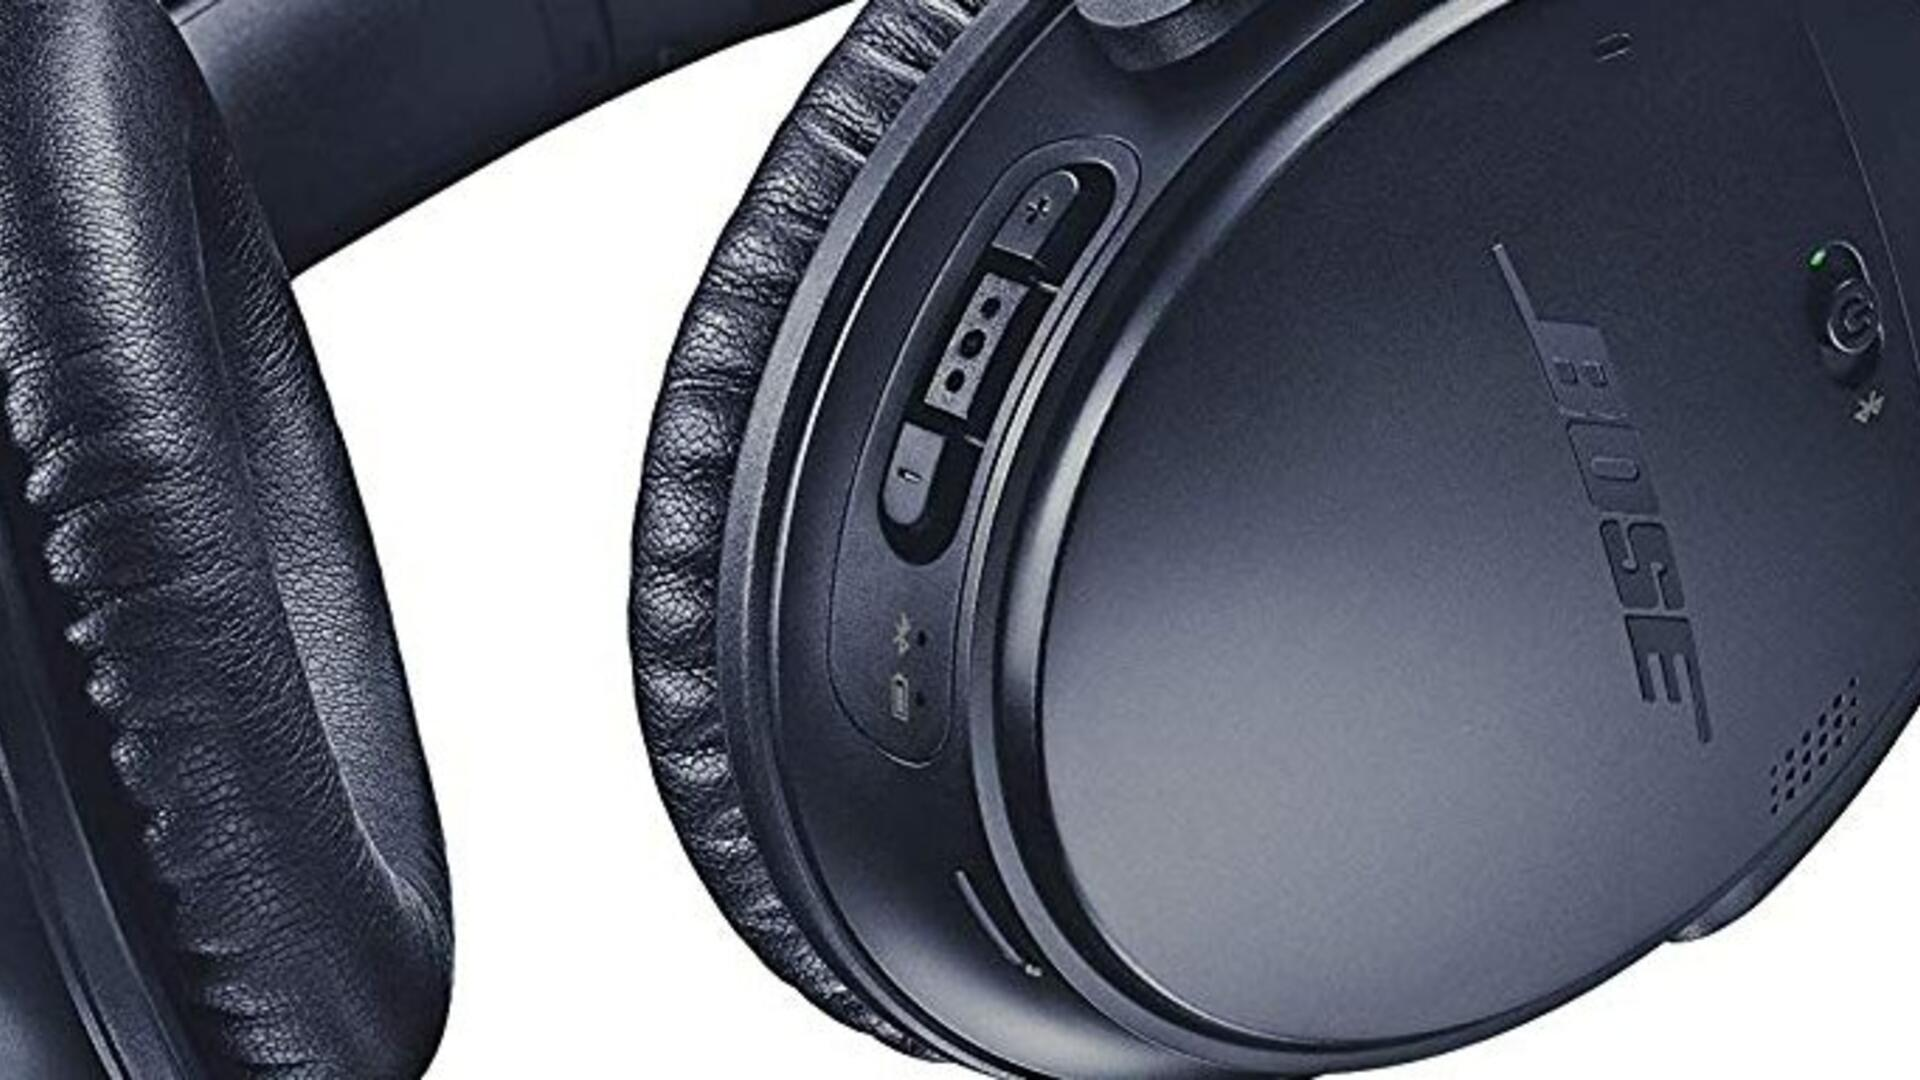 Cheapest Noise Cancelling Headphones in the Black Friday Deals - £35 Special Offer